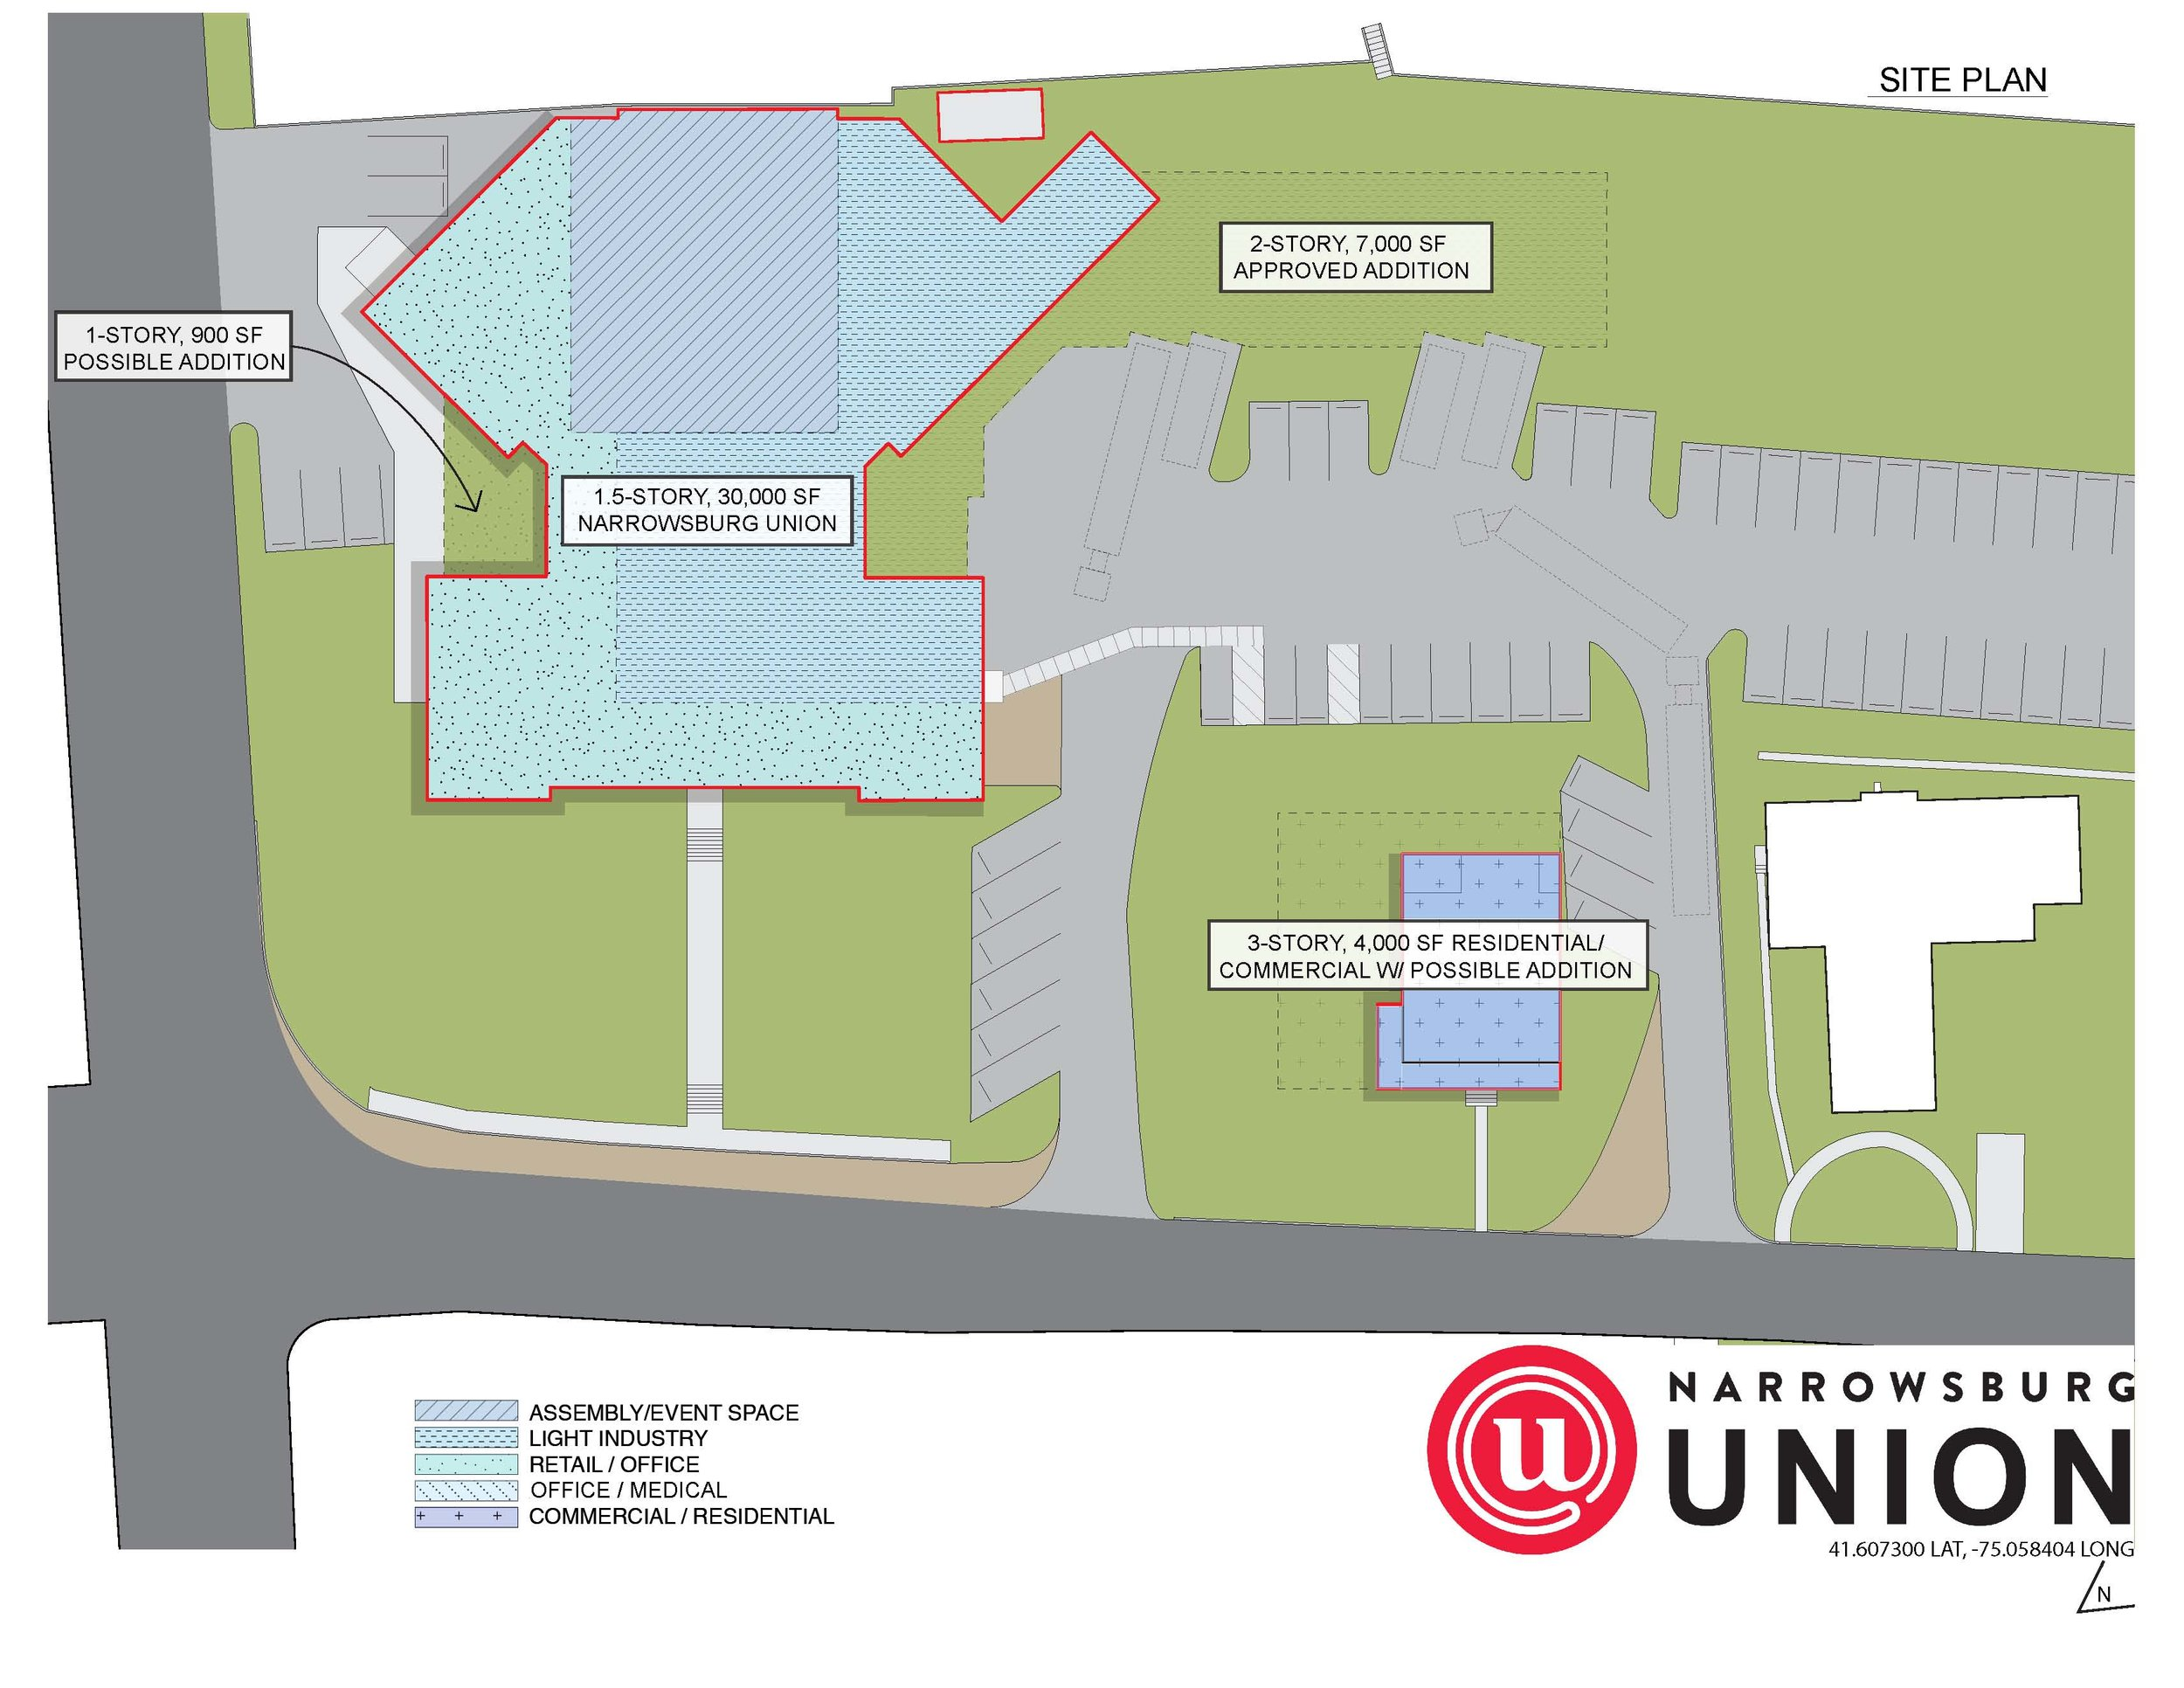 Narrowsburg Union Site Plan.jpg